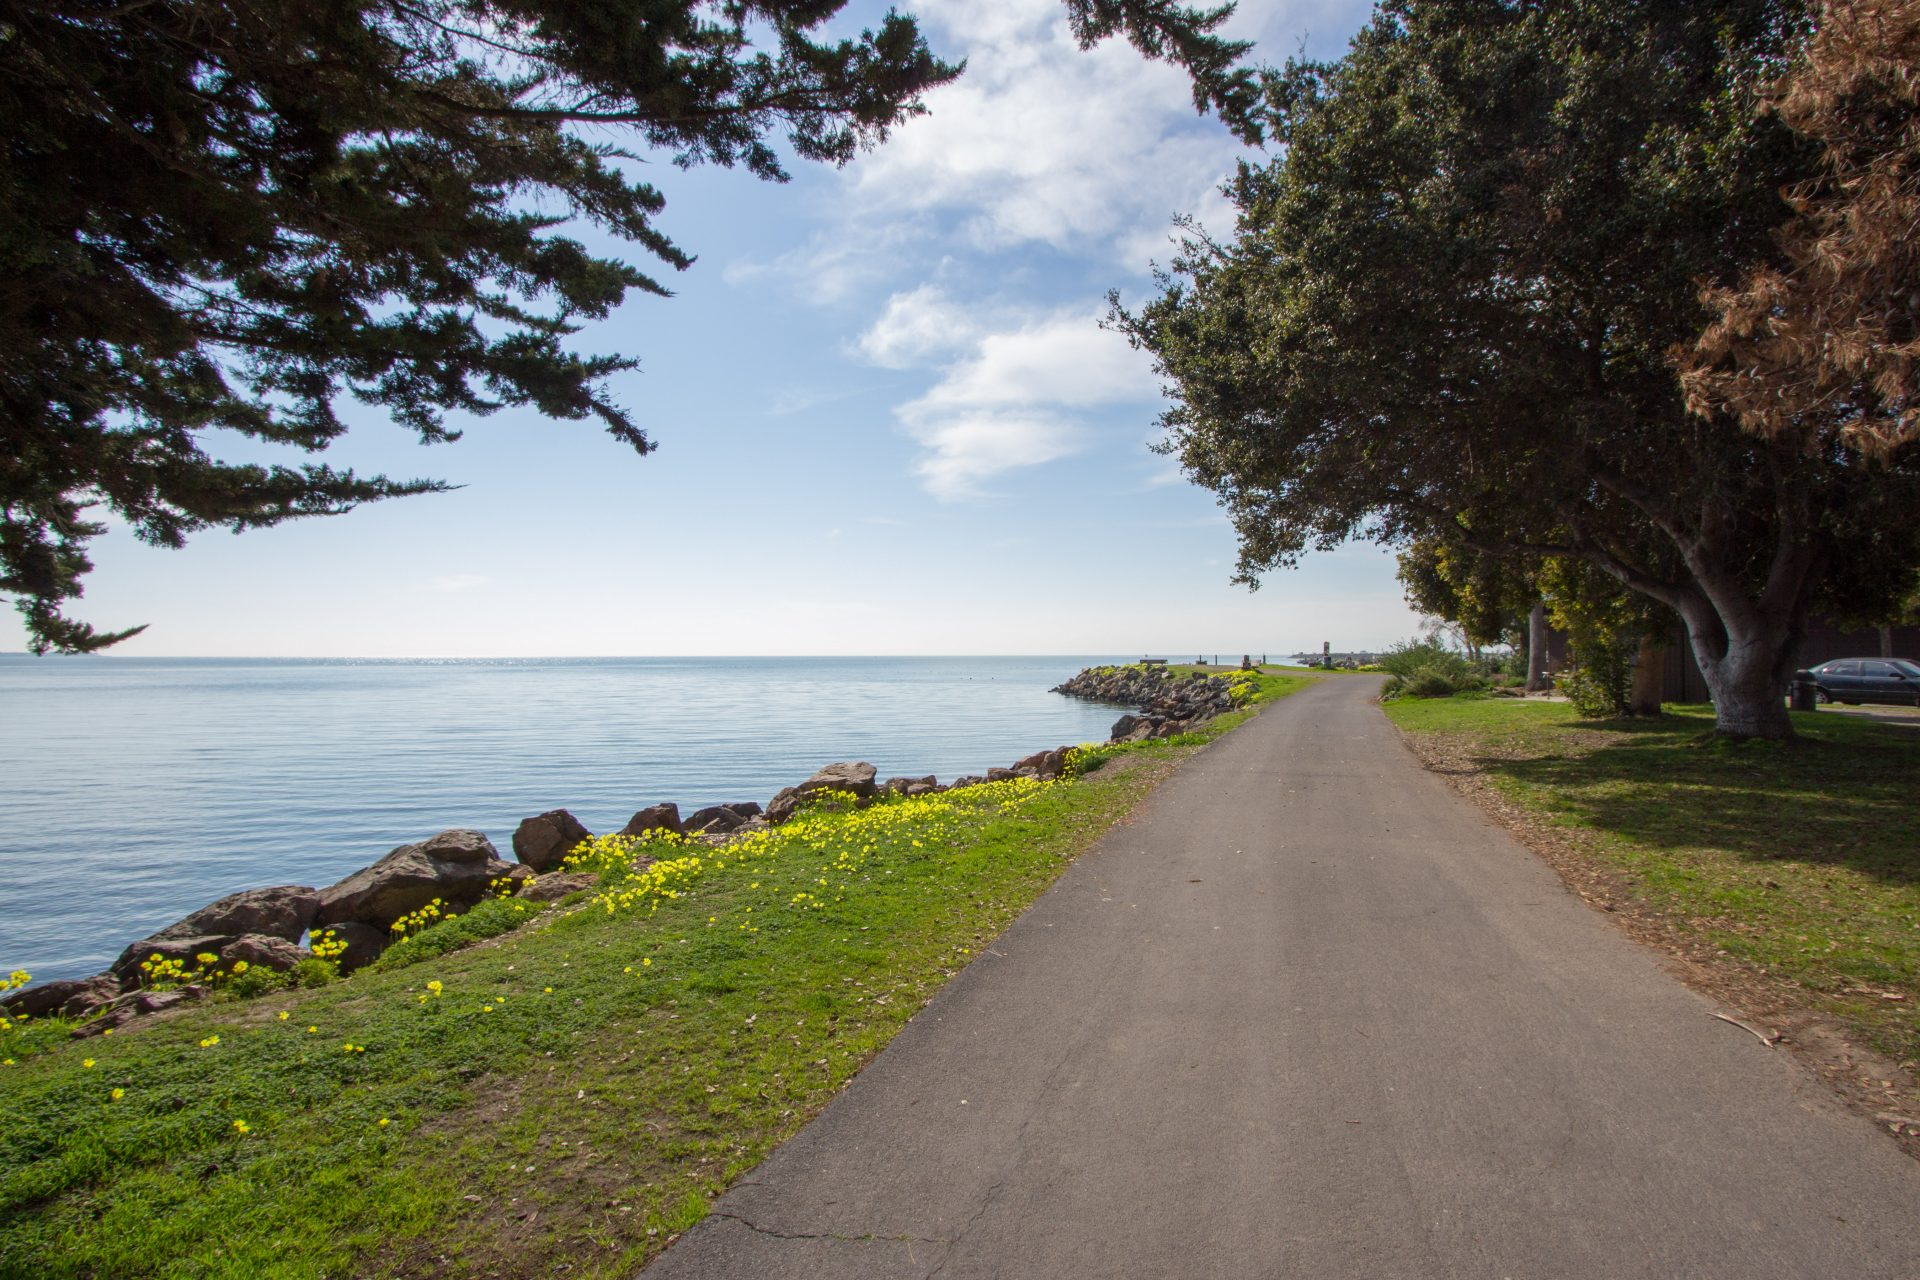 wide flat paved path extending along bay, with water on left